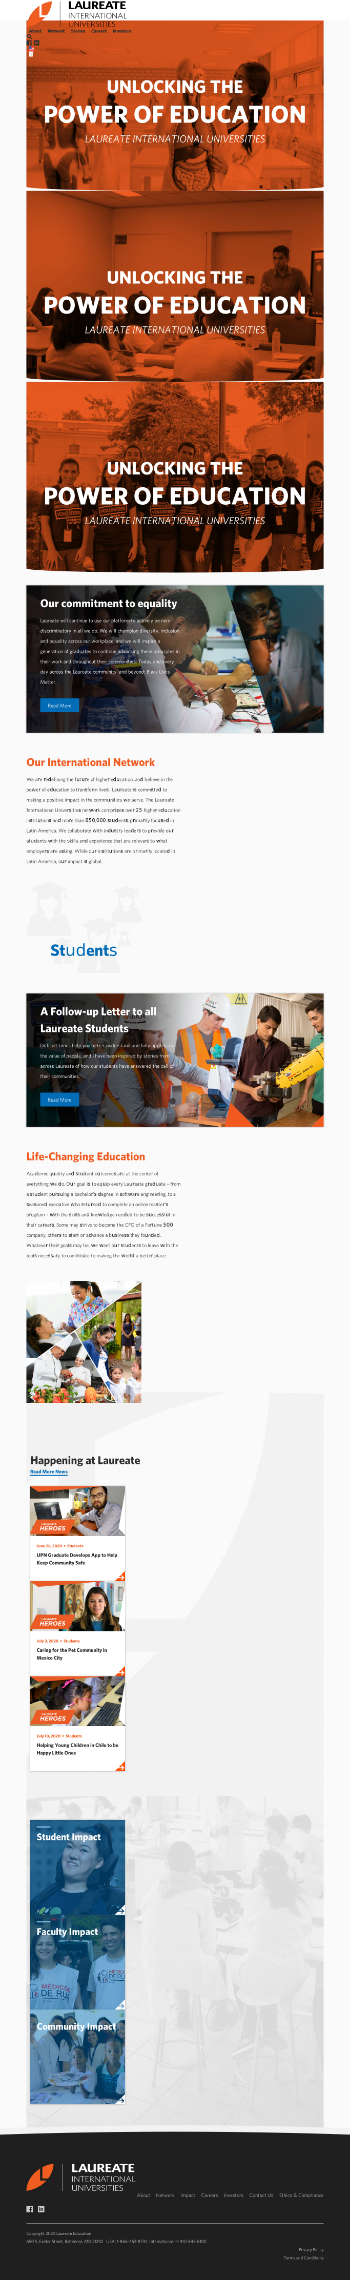 Laureate Education, Inc. Website Screenshot